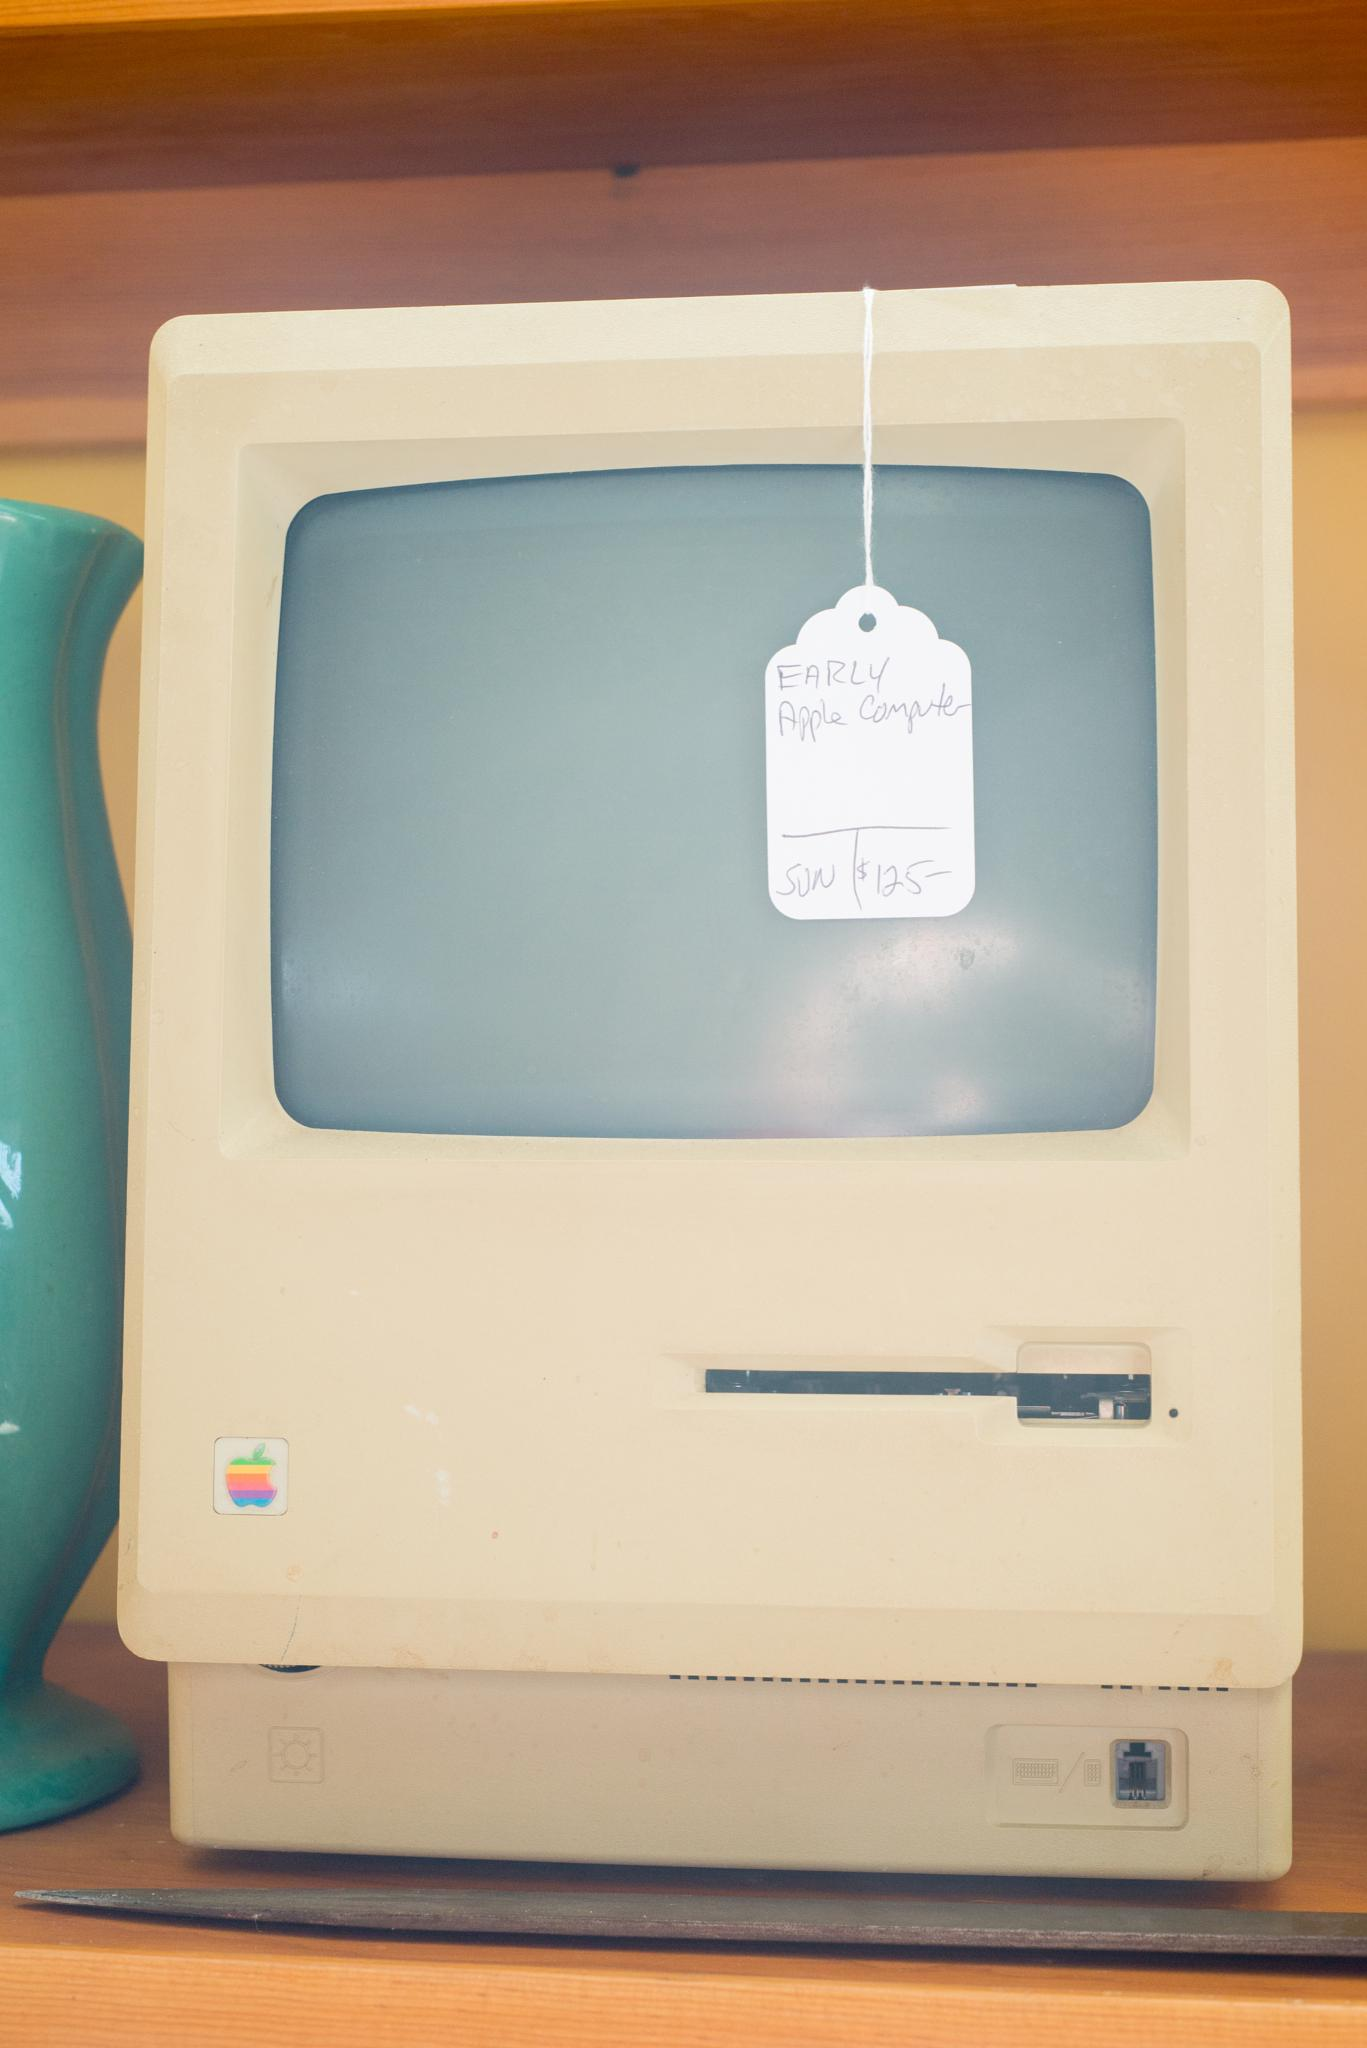 Early computing by aubri porter